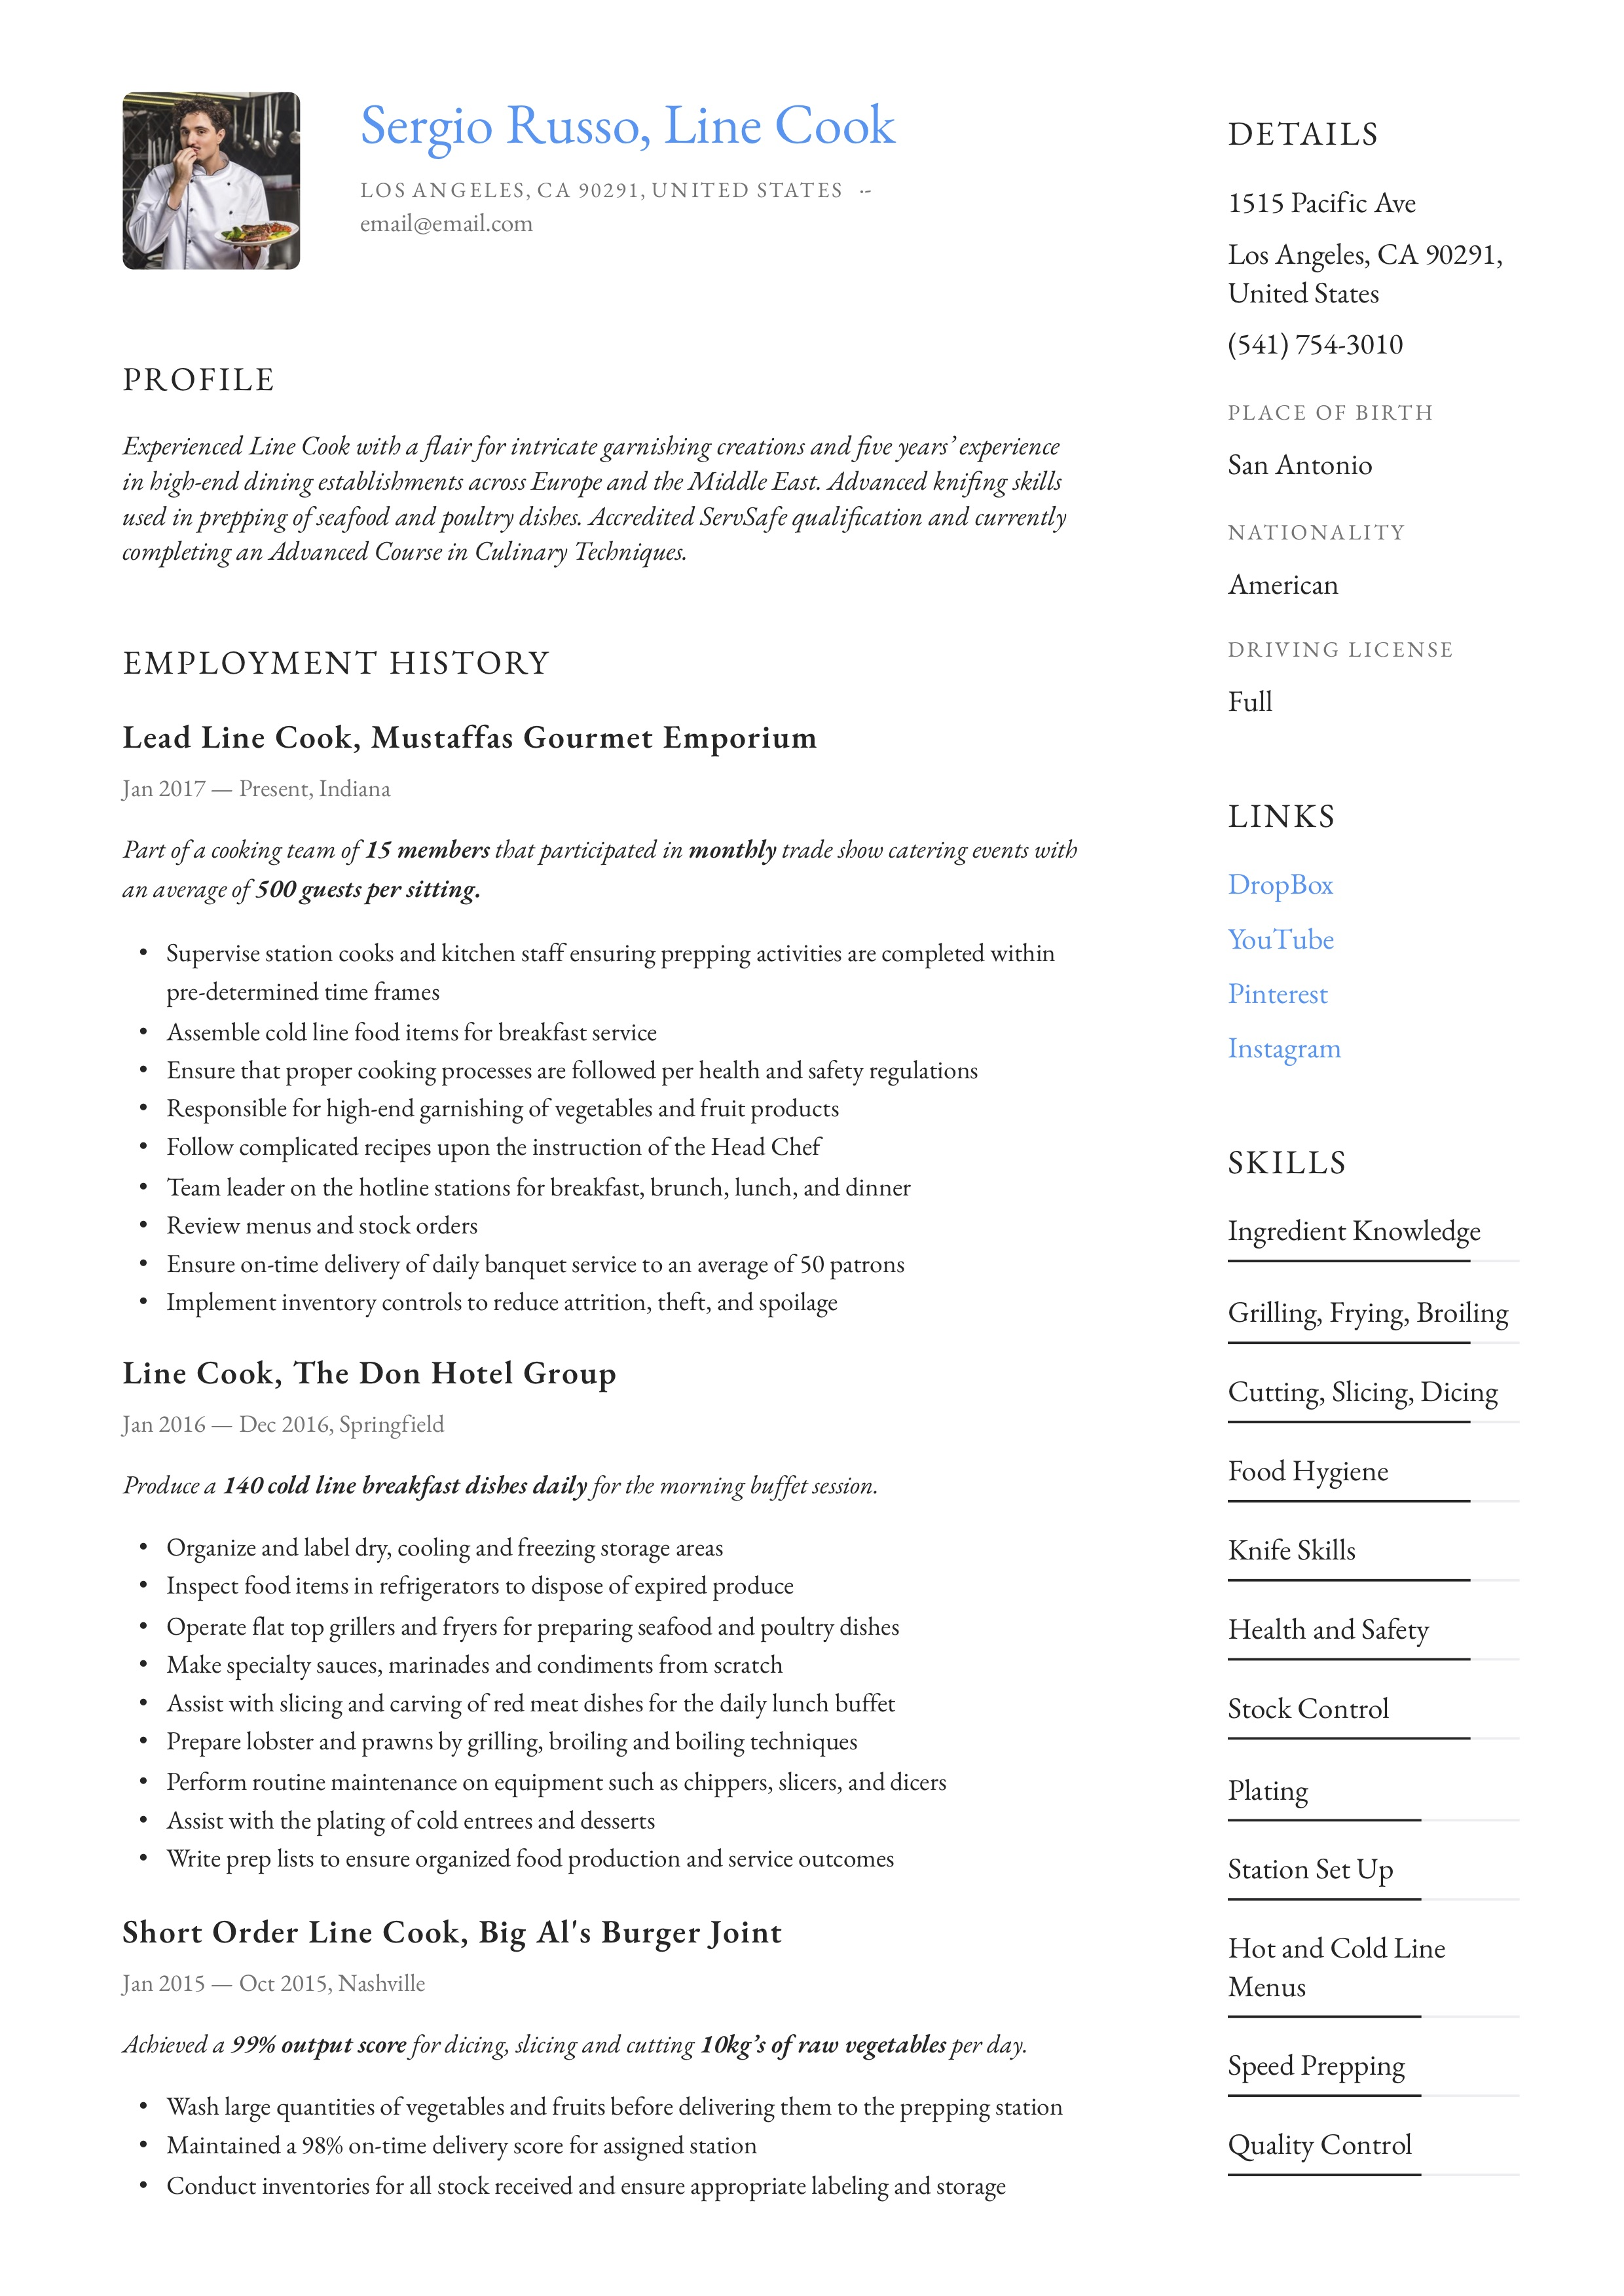 Resume Example Line Cook